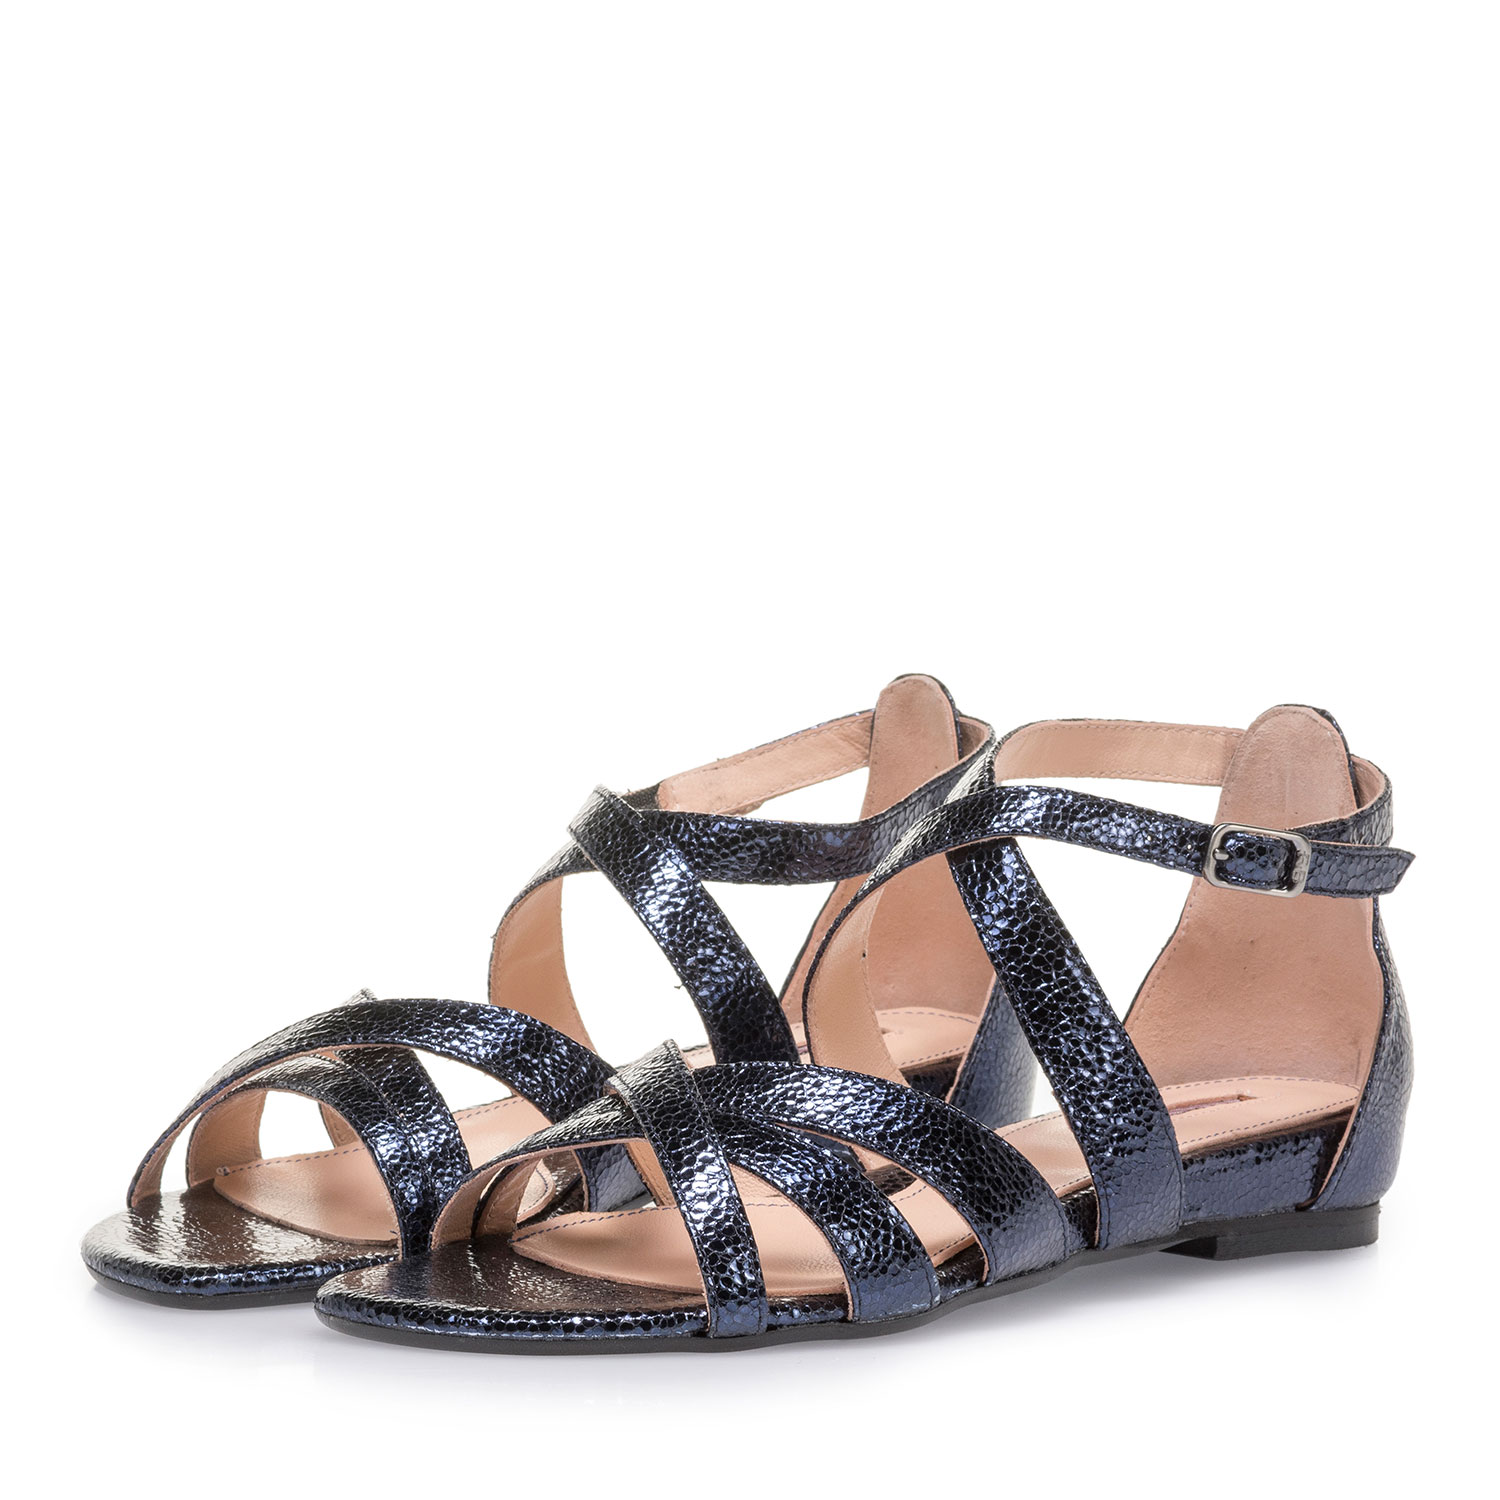 85956/03 - Dark blue sandals with metallic print